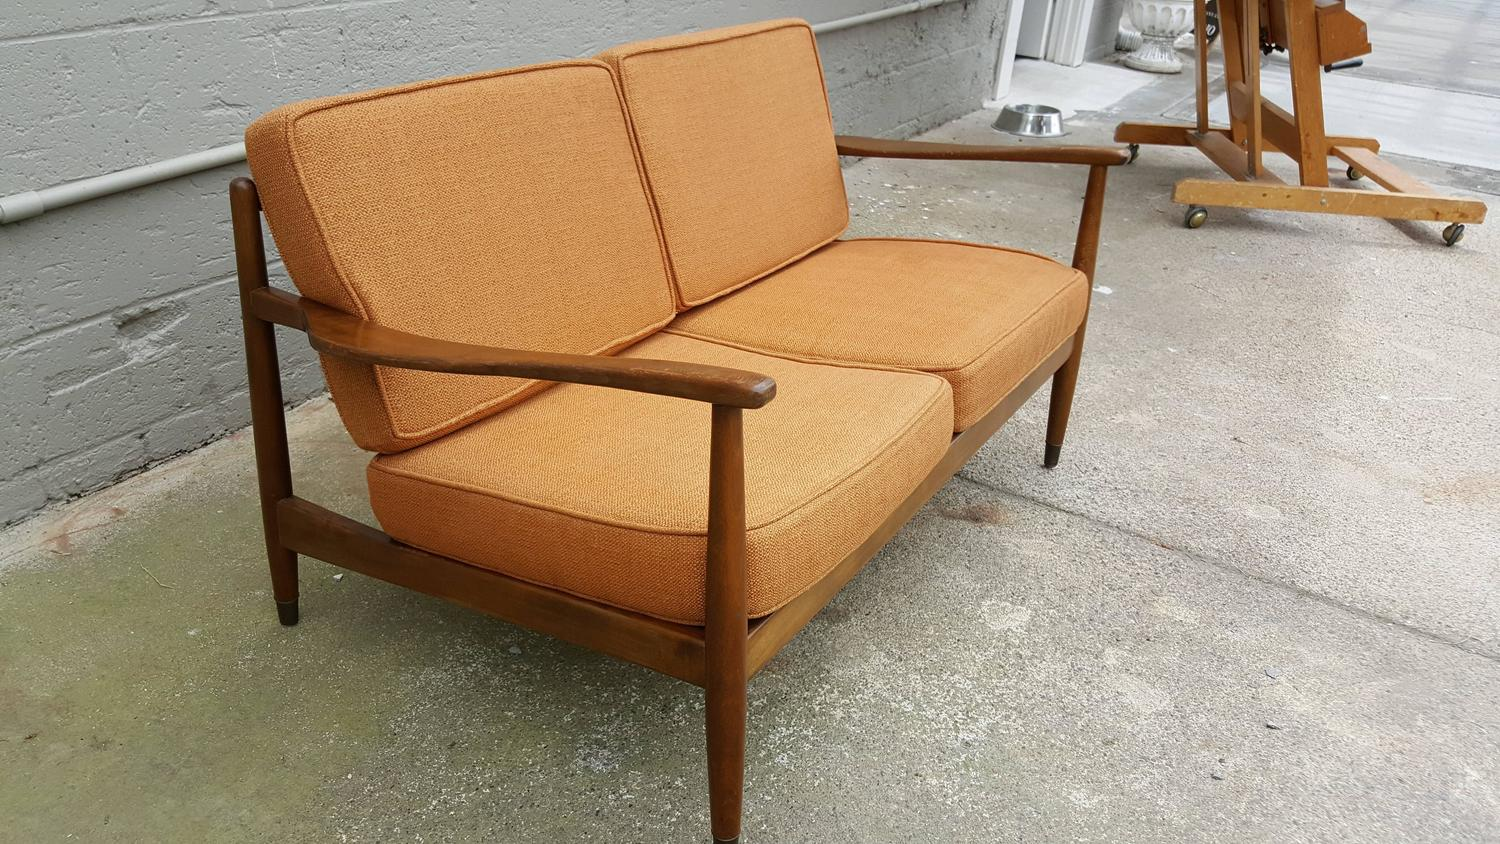 Scandinavian Furniture Sale Classic Scandinavian Modern Sofa Or Loveseat By Dux For